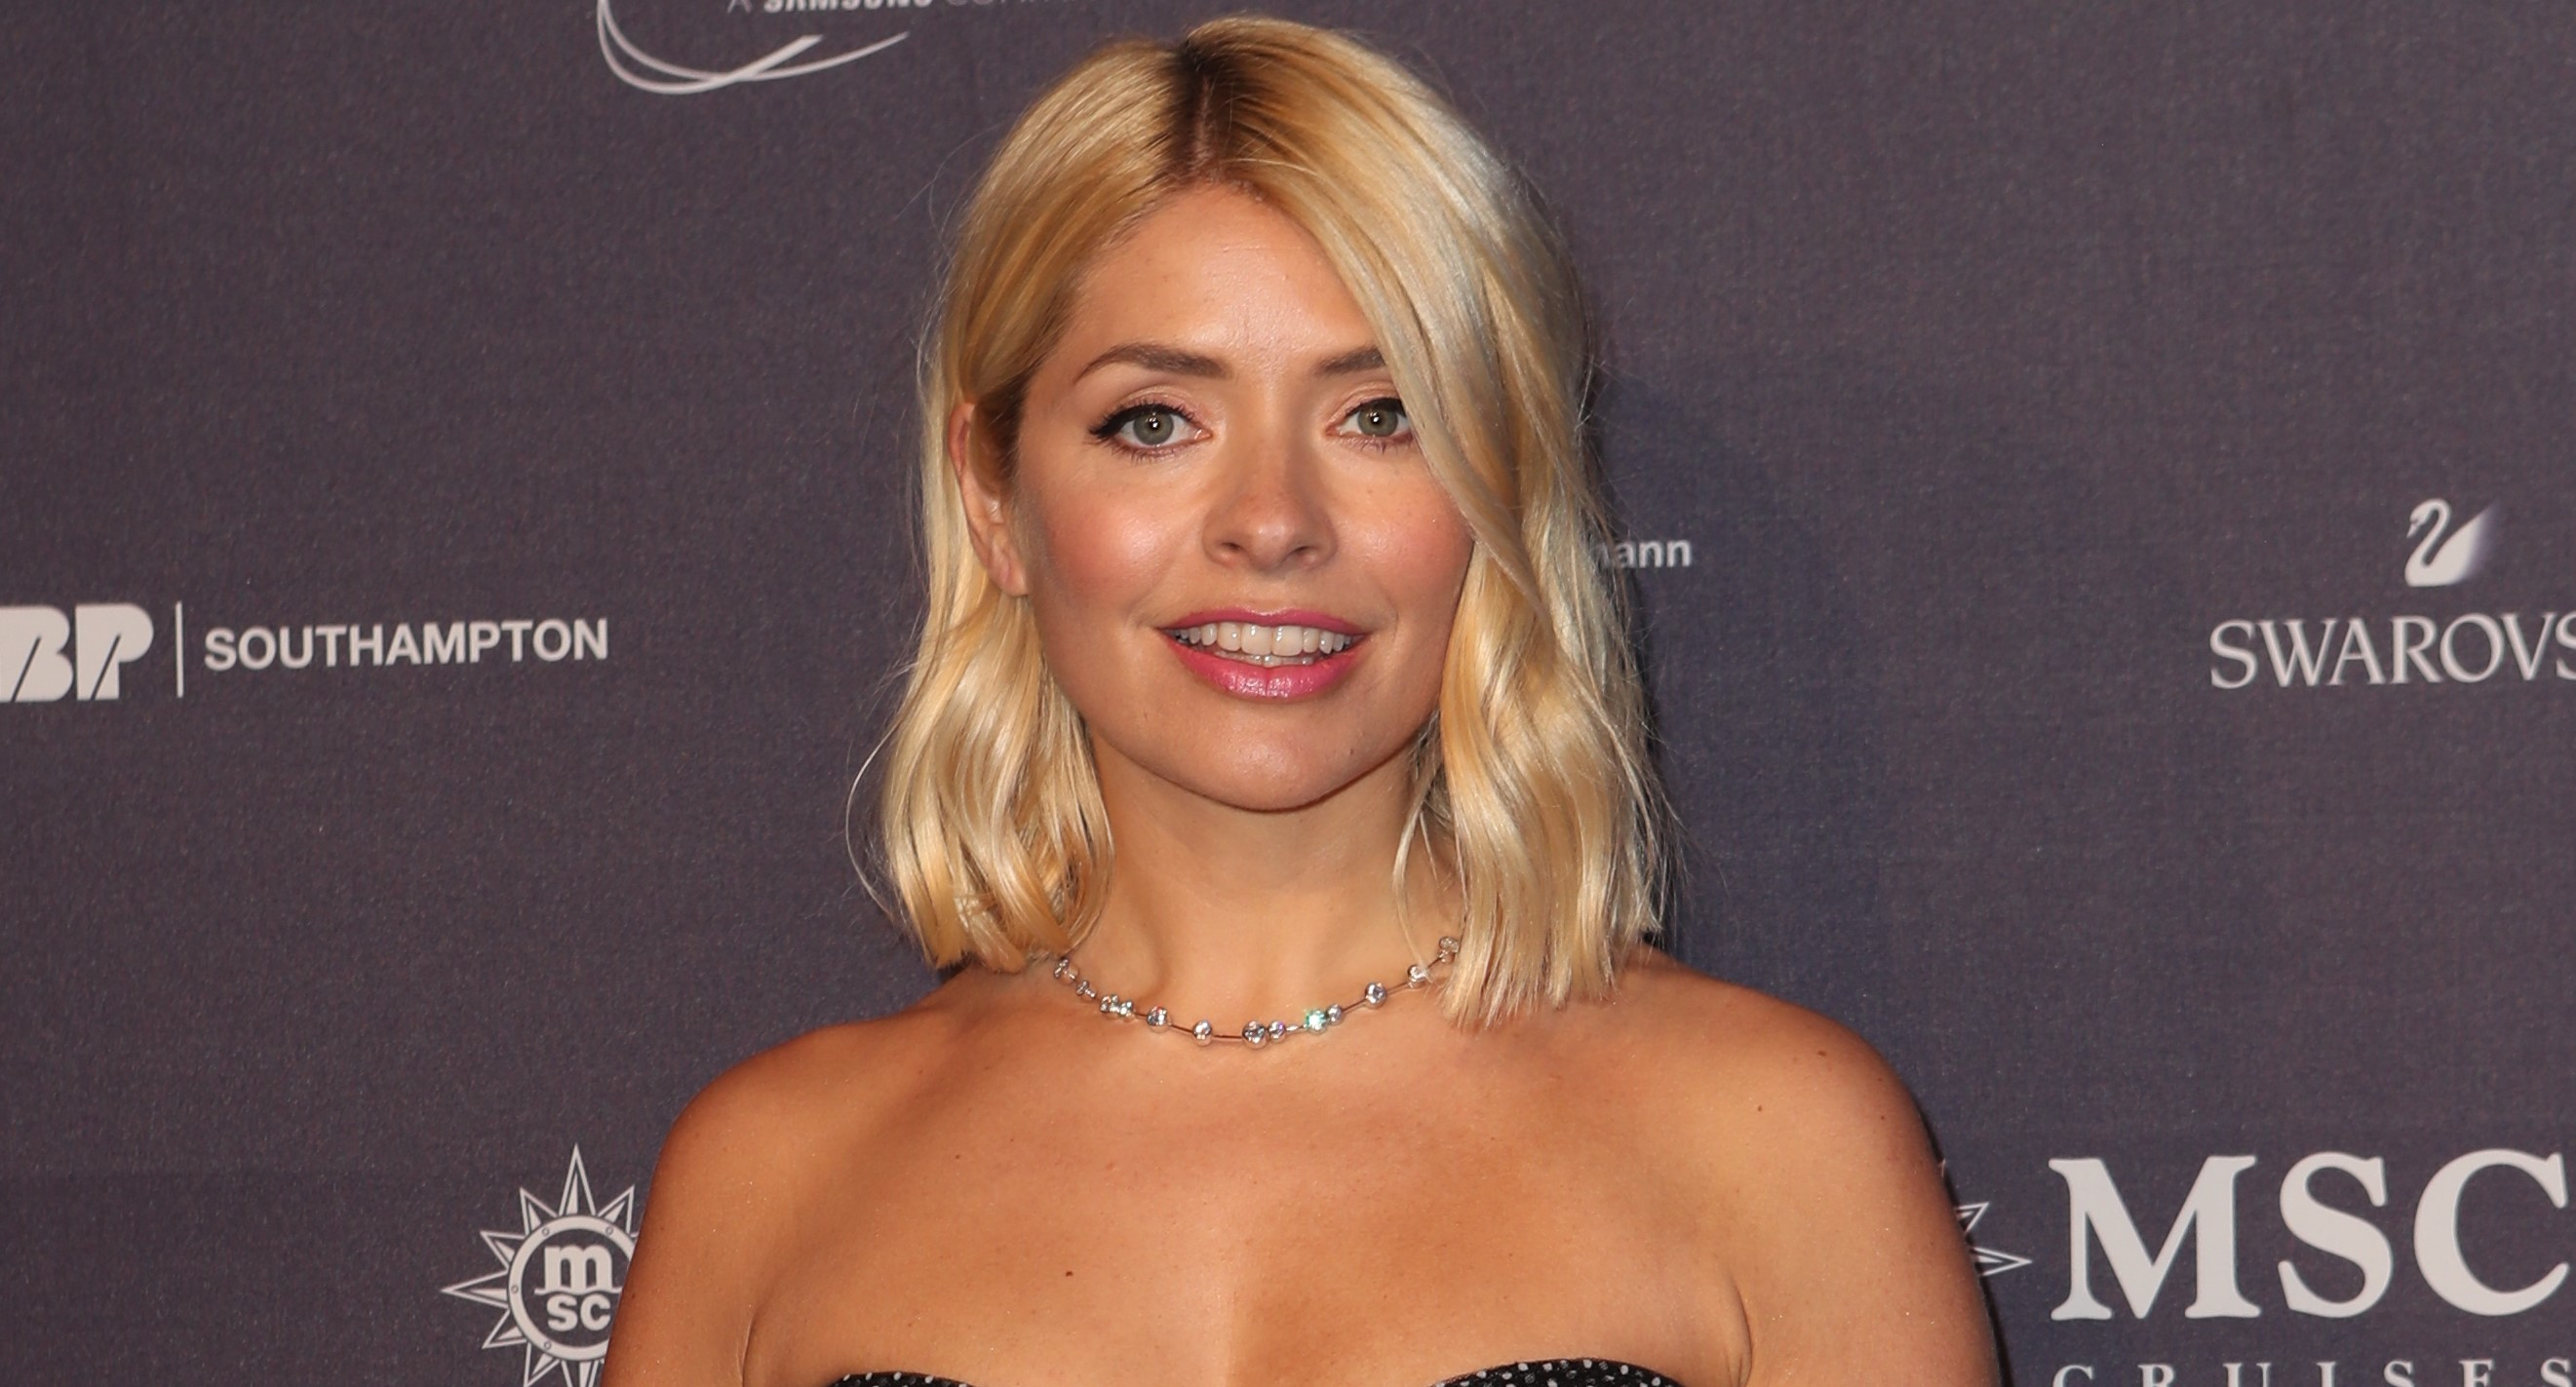 Holly Willoughby shares sweet holiday photo of son Harry to celebrate his birthday